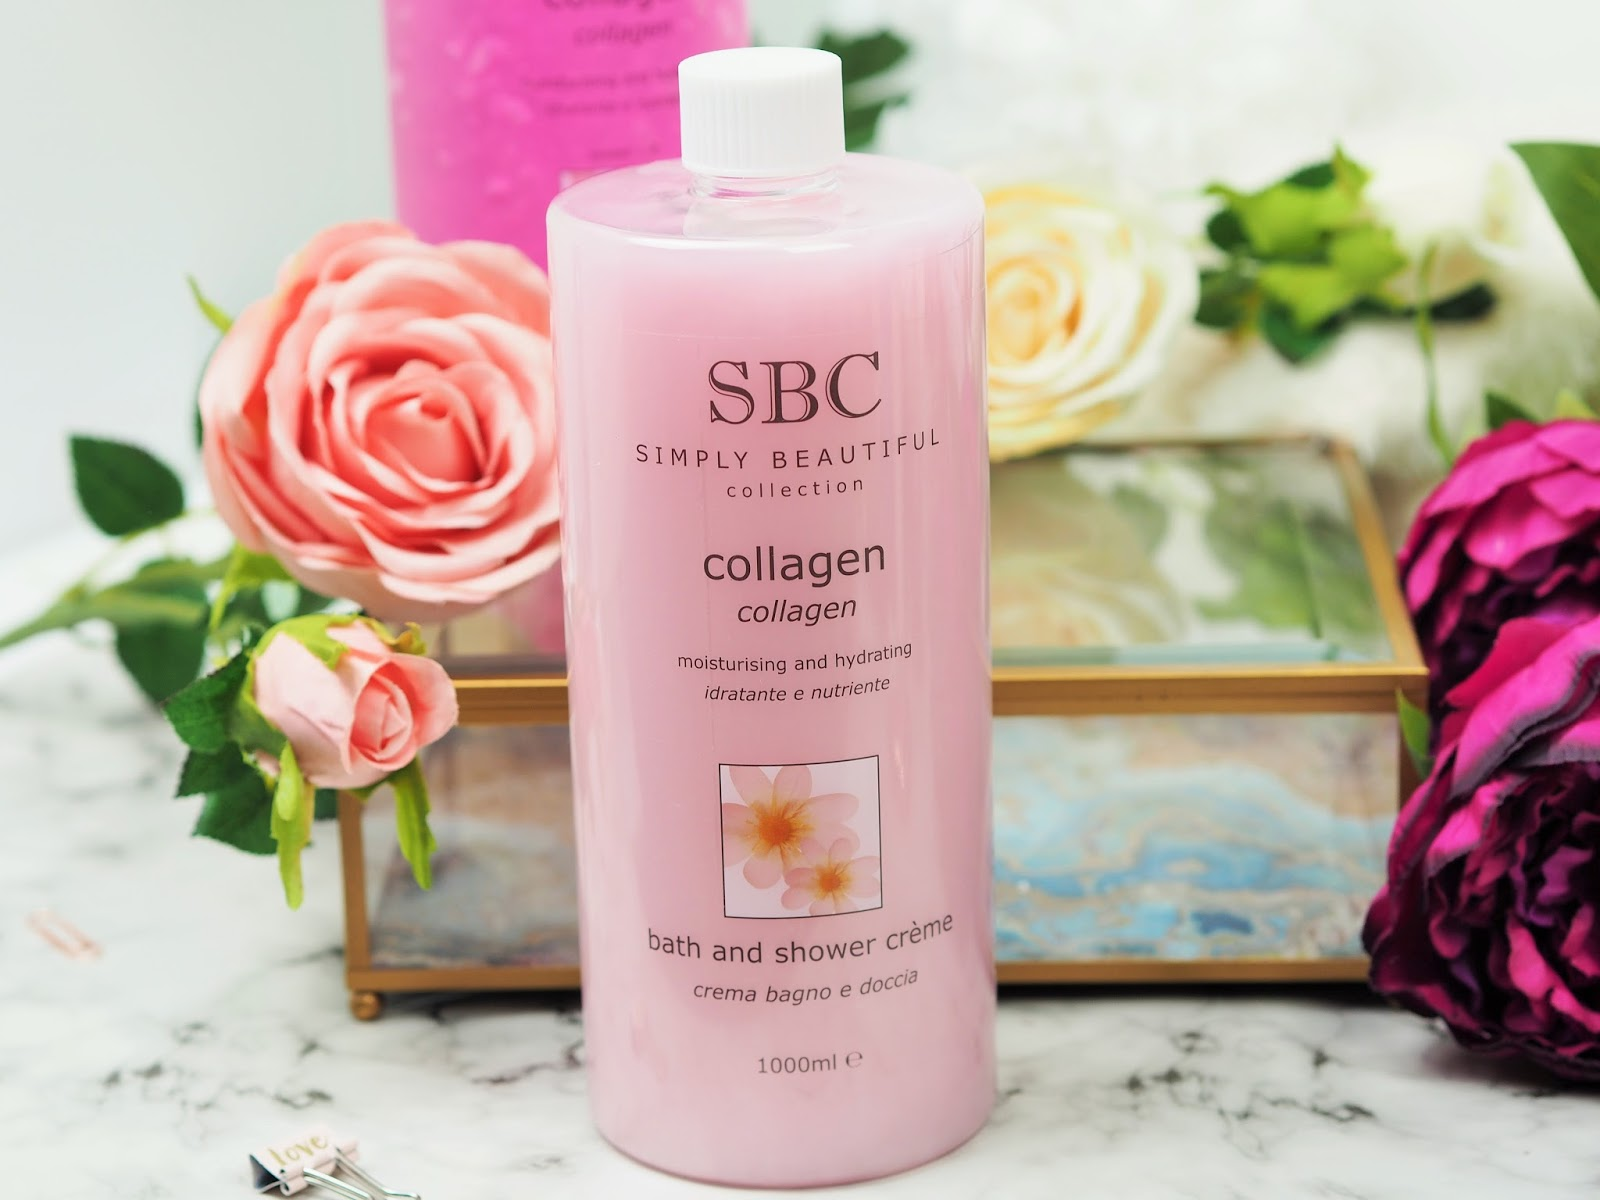 Collagen Bath & Shower Creme - SBC